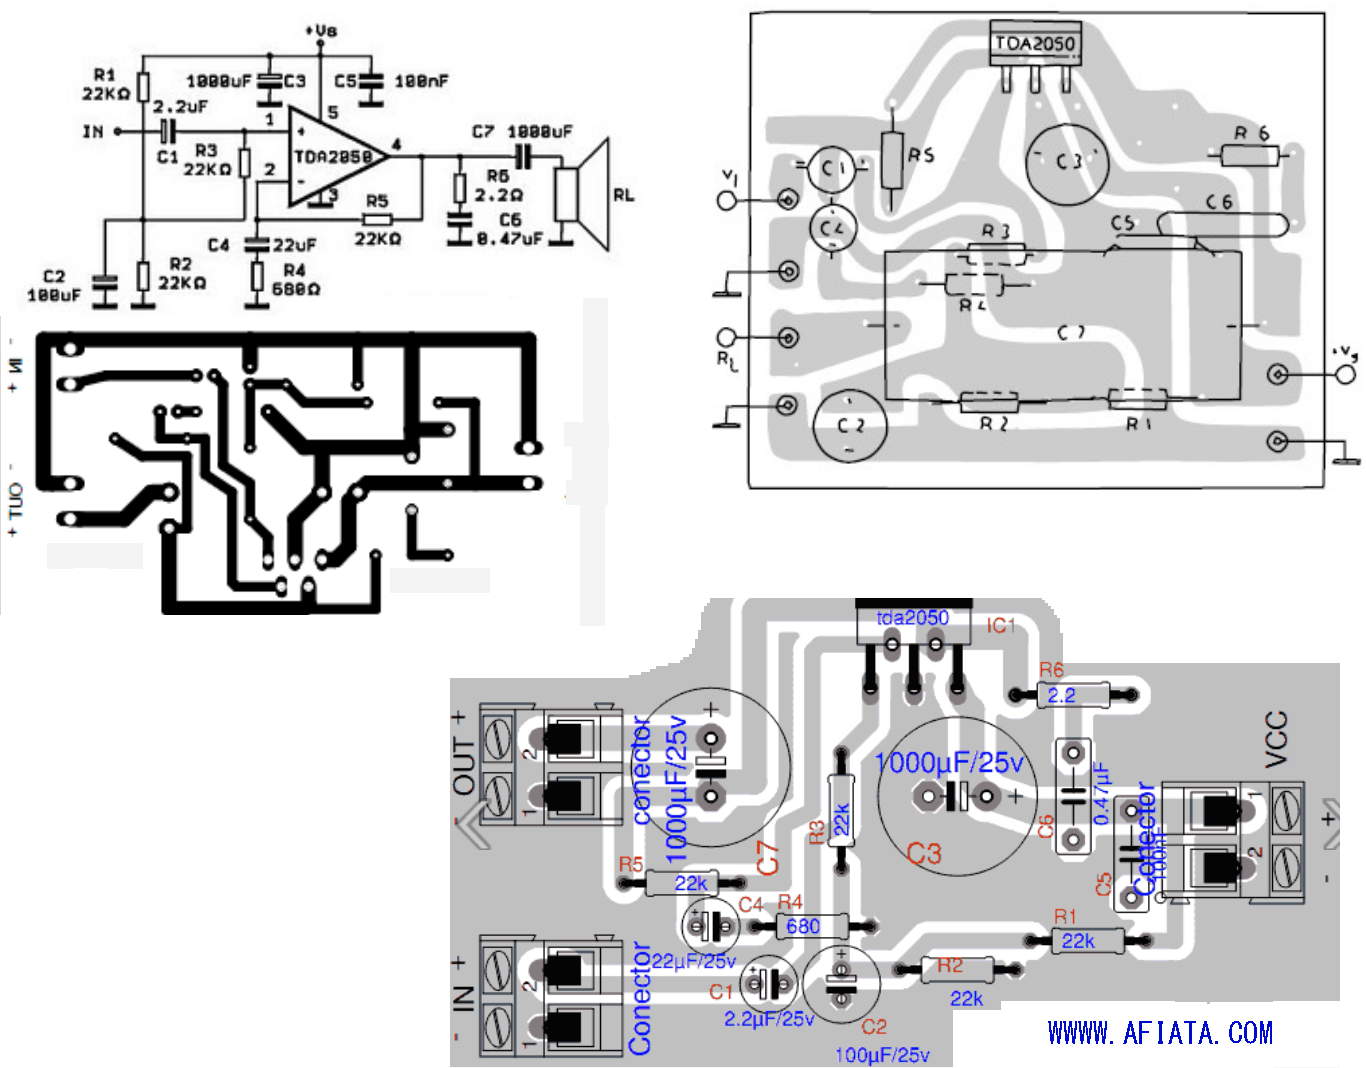 tda2050 layout and circuit diagram [ 1366 x 1068 Pixel ]